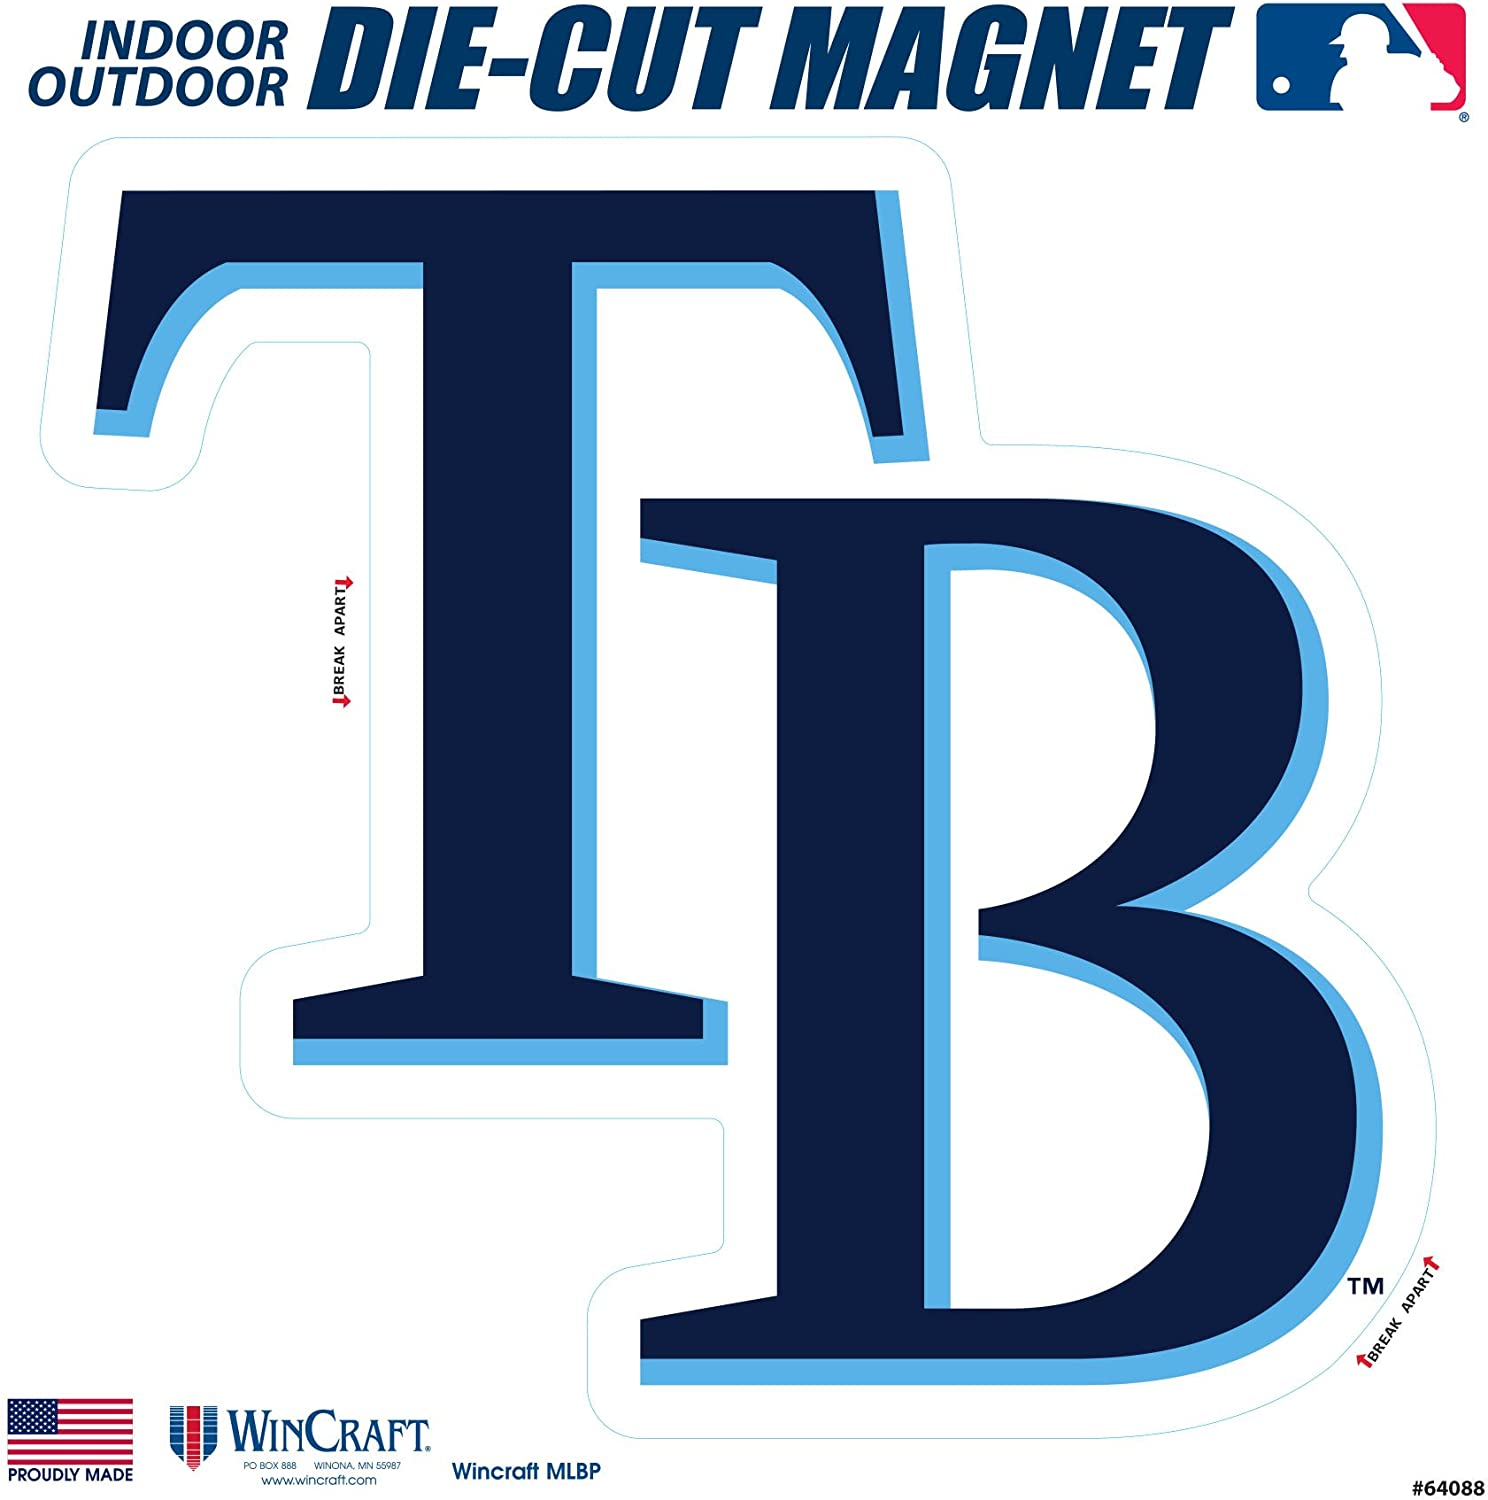 amazon com stockdale tampa bay rays sd 6 logo magnet die cut vinyl auto home heavy duty baseball sports outdoors amazon com